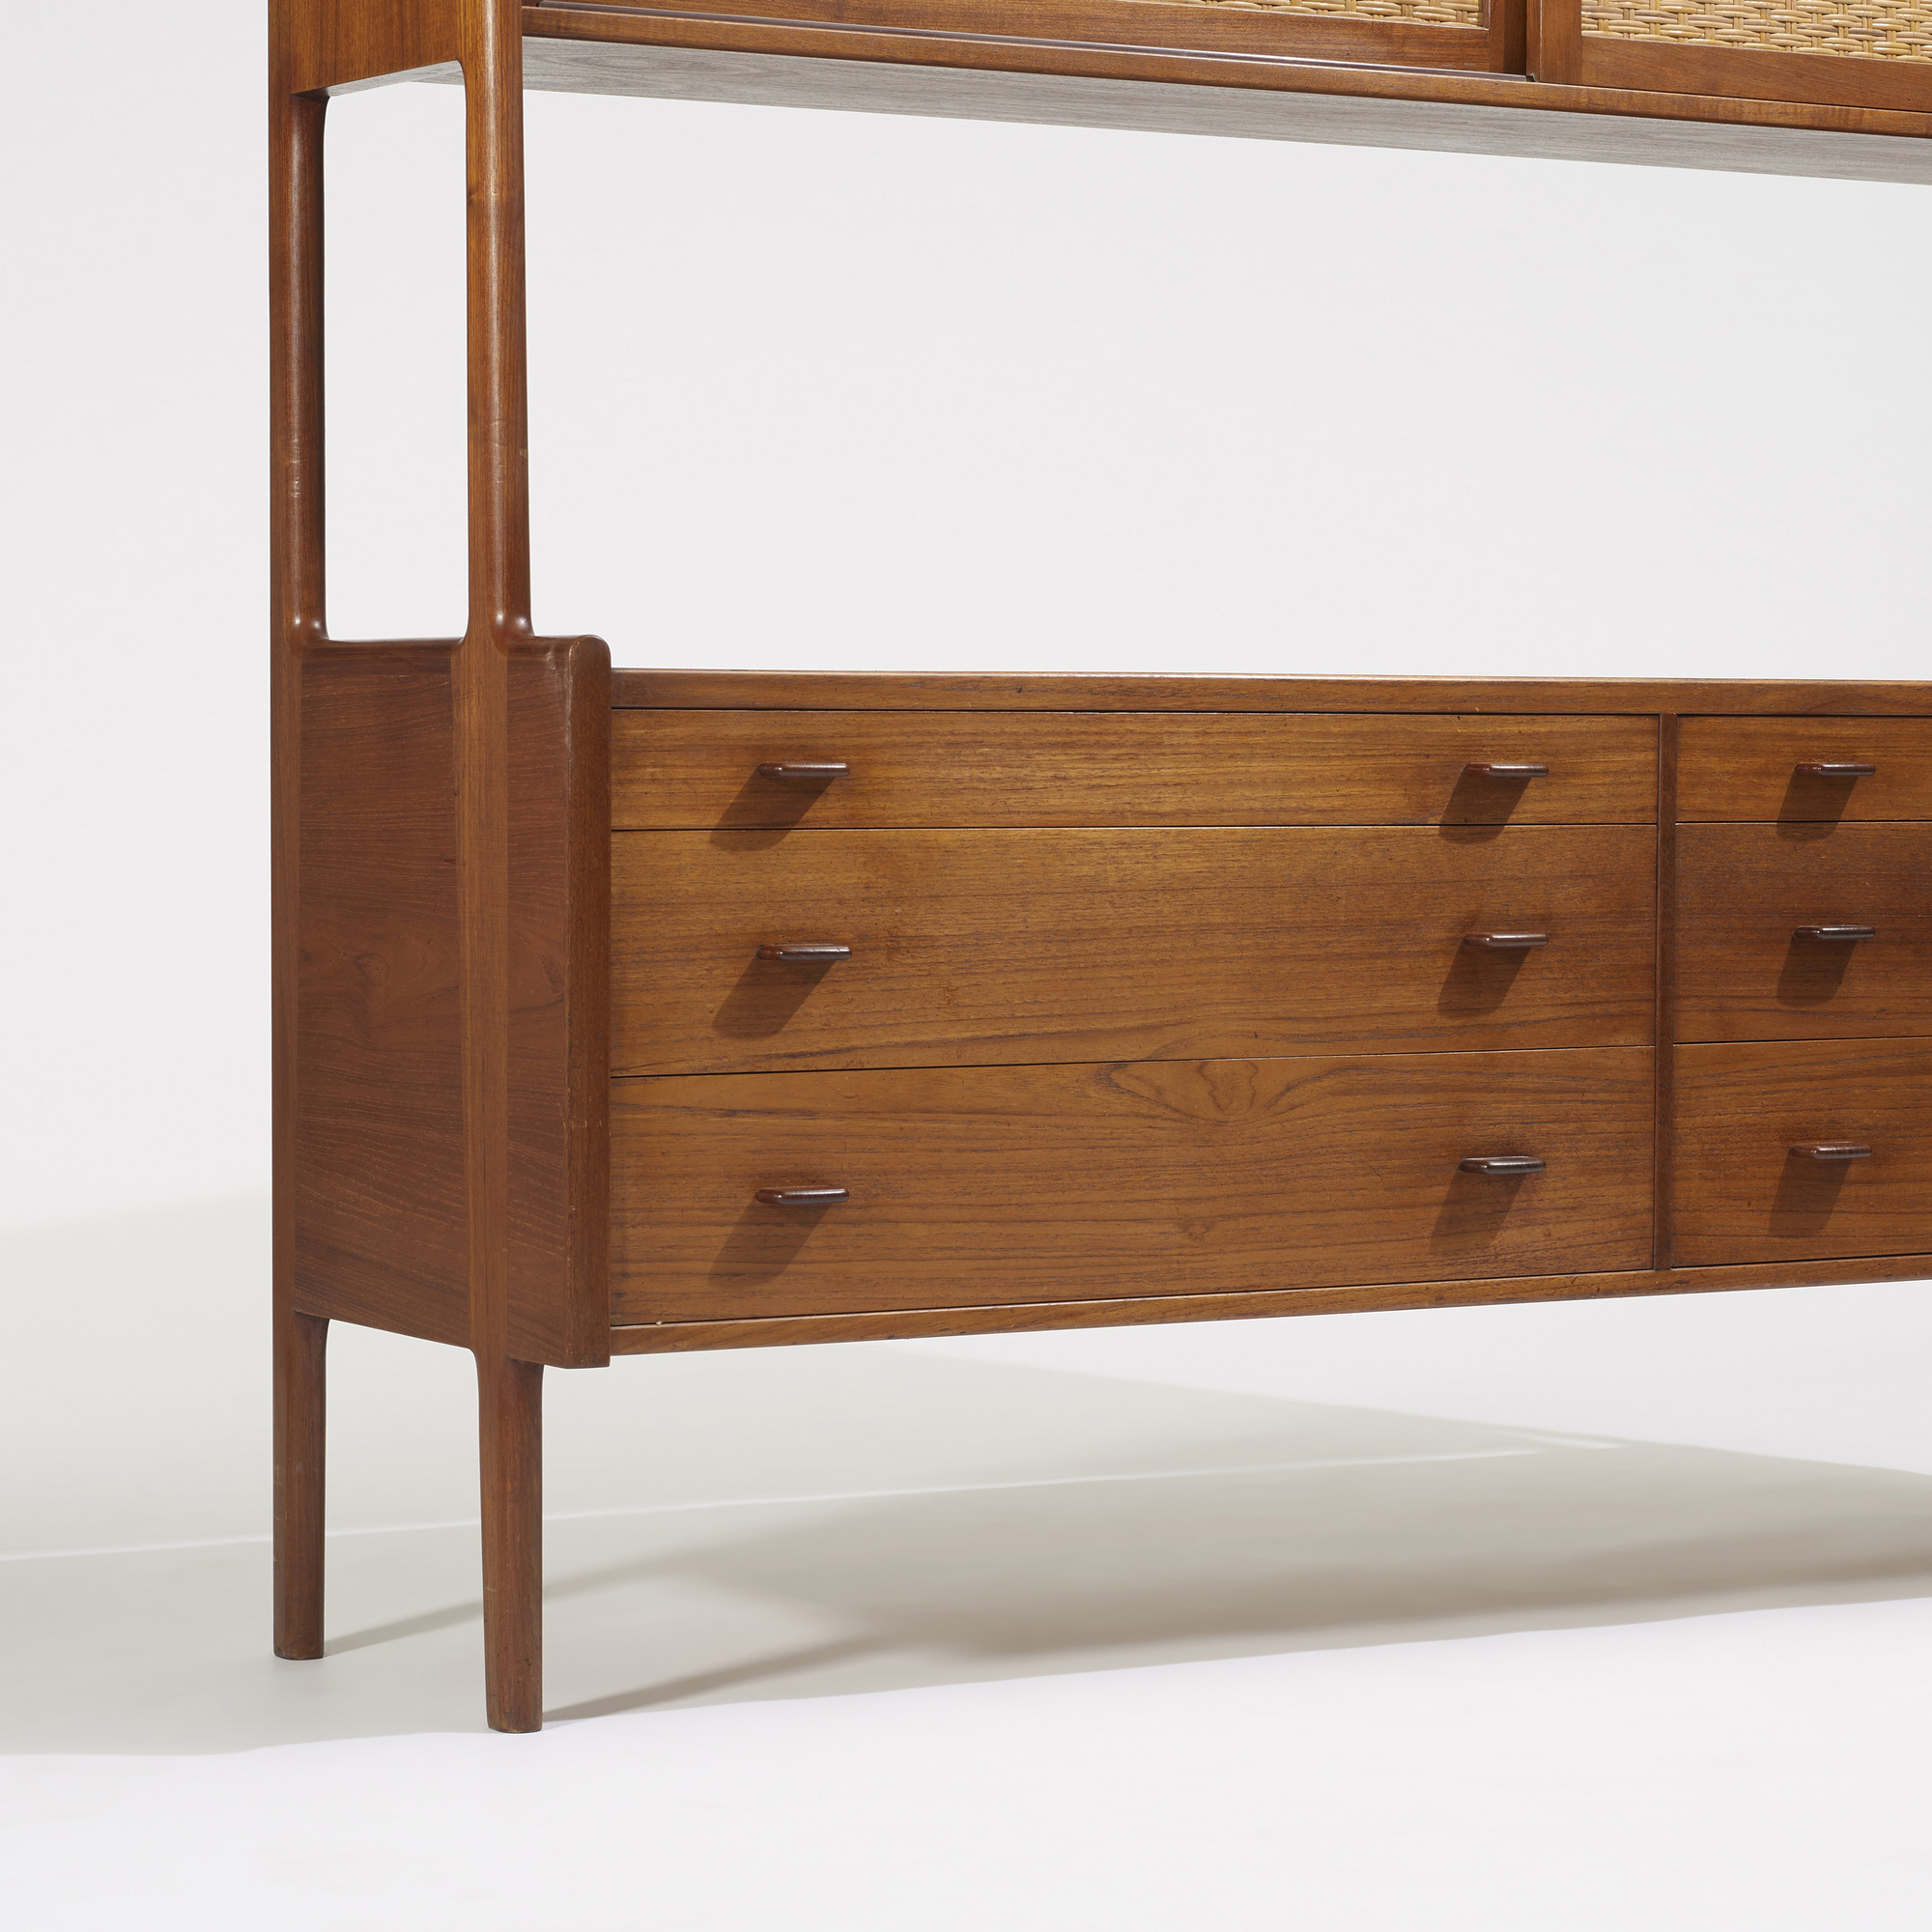 788: Hans J. Wegner / cabinet, model RY20 (2 of 3)